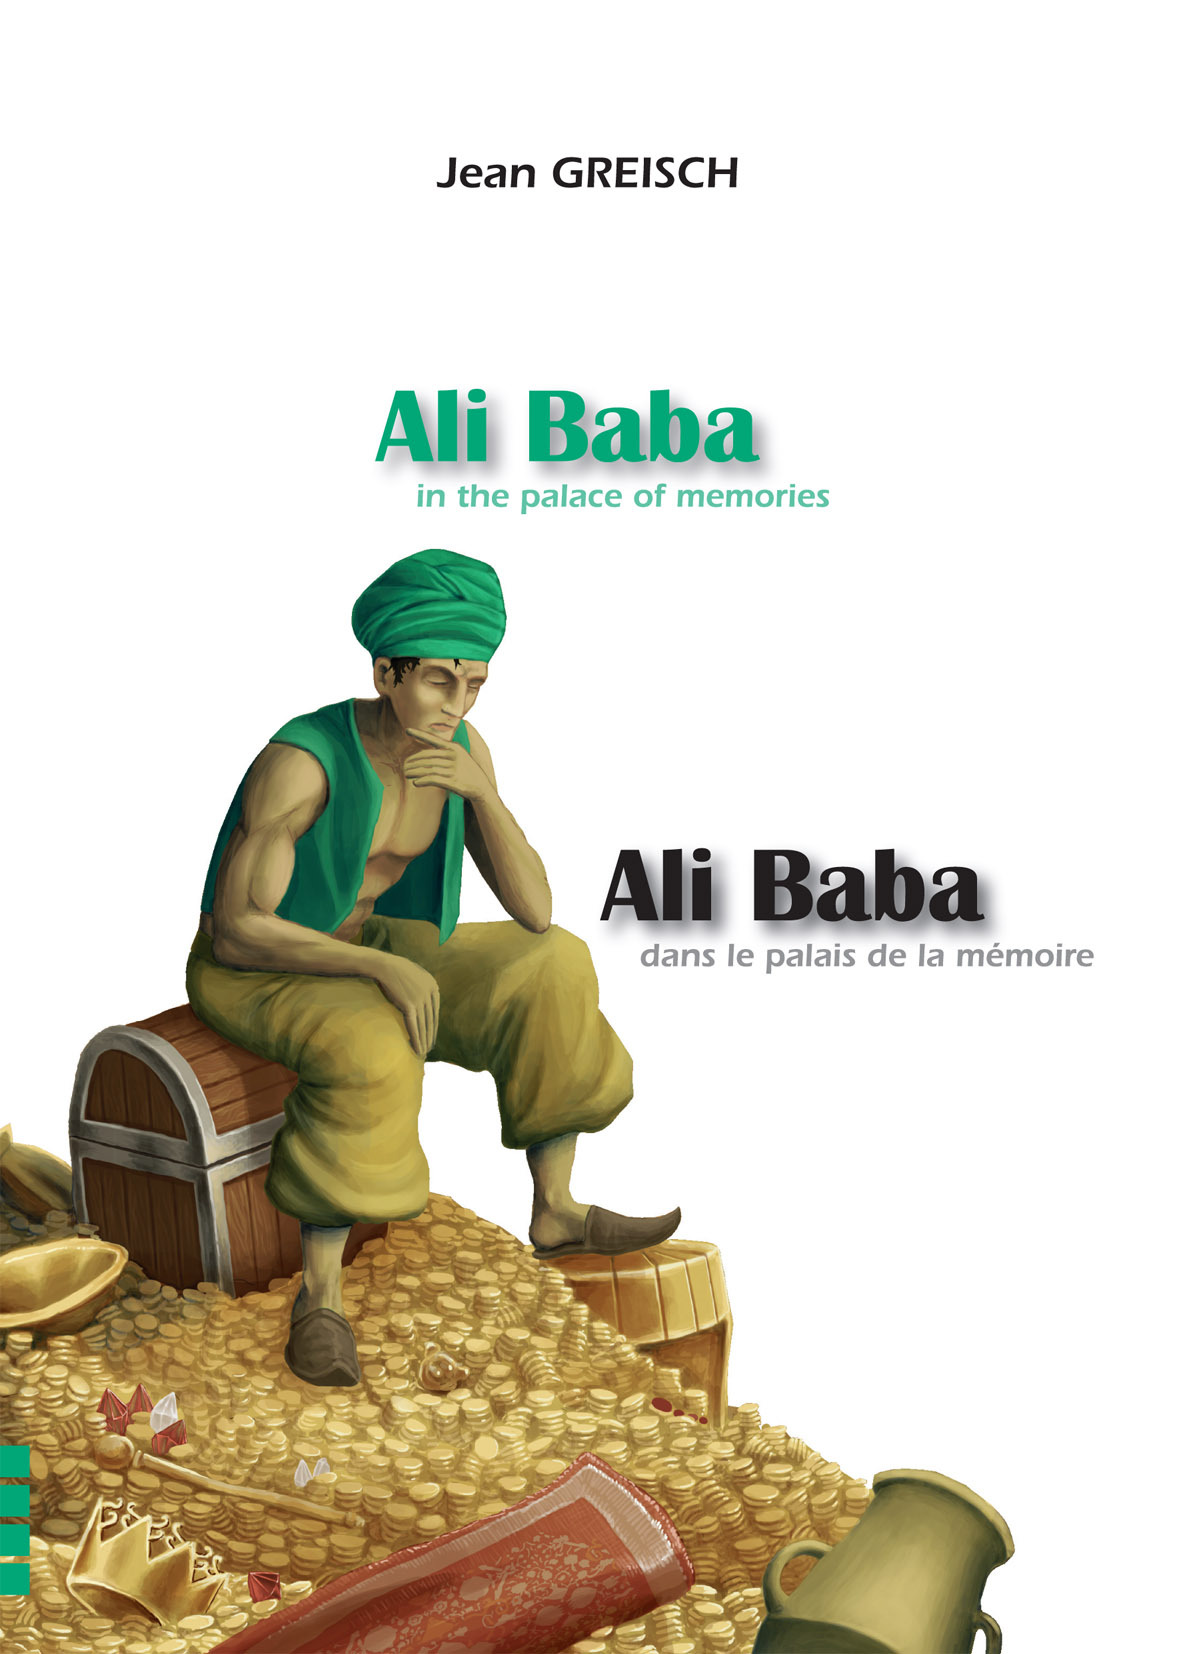 ALI BABA DANS LE PALAIS DE LA MEMOIRE / ALI BABA IN THE PALACE OF MEMORIES